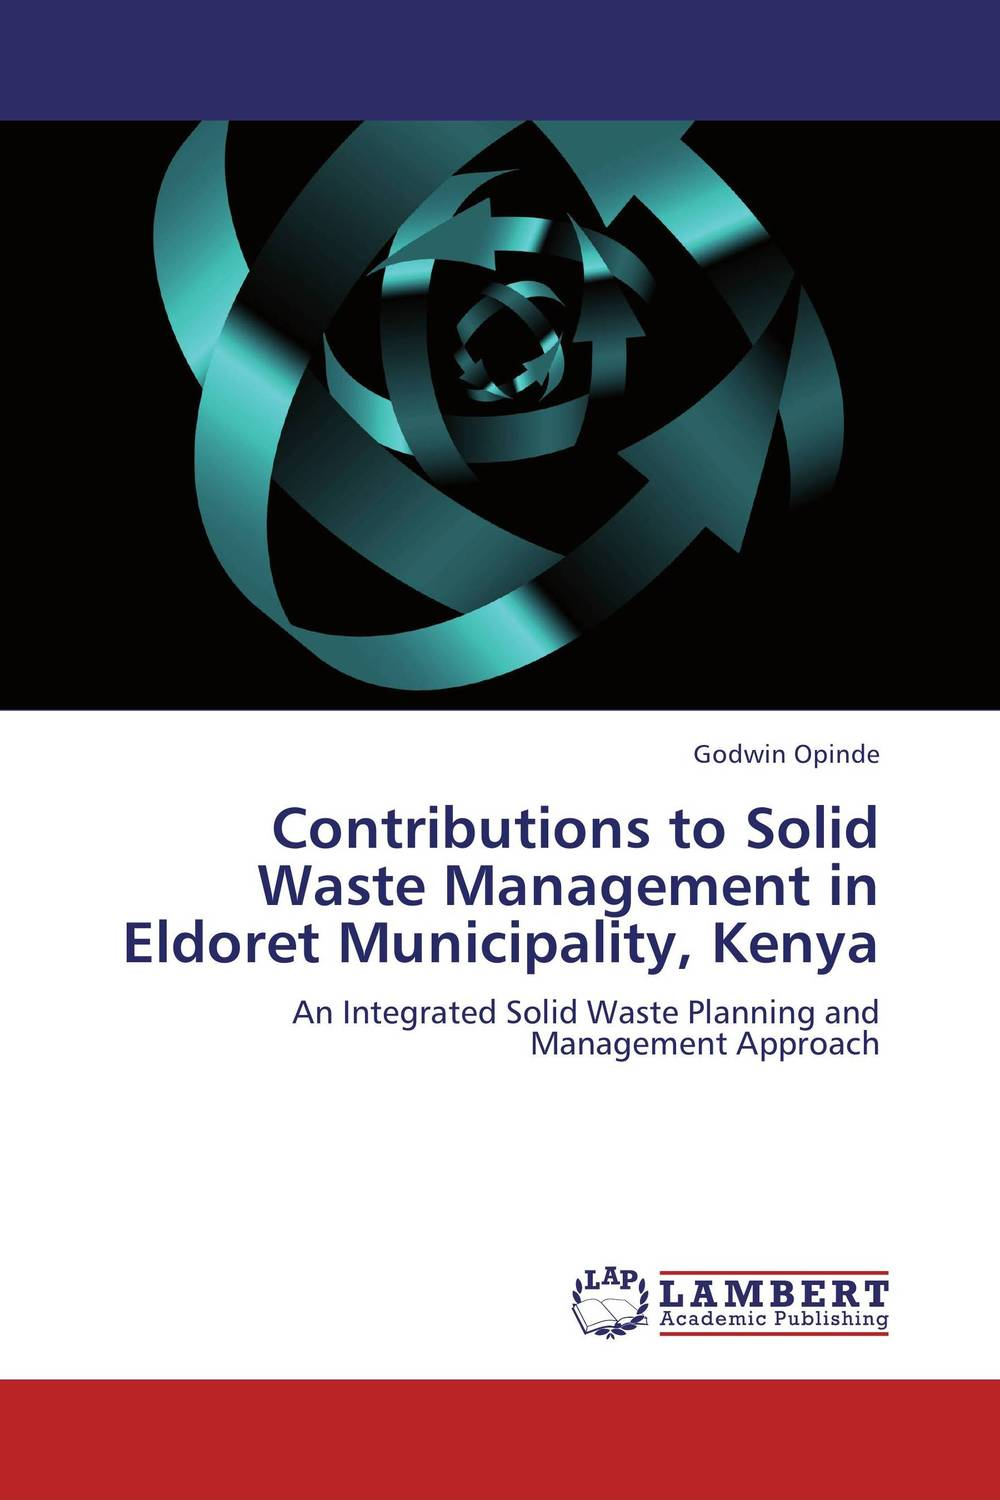 Contributions to Solid Waste Management in Eldoret Municipality, Kenya